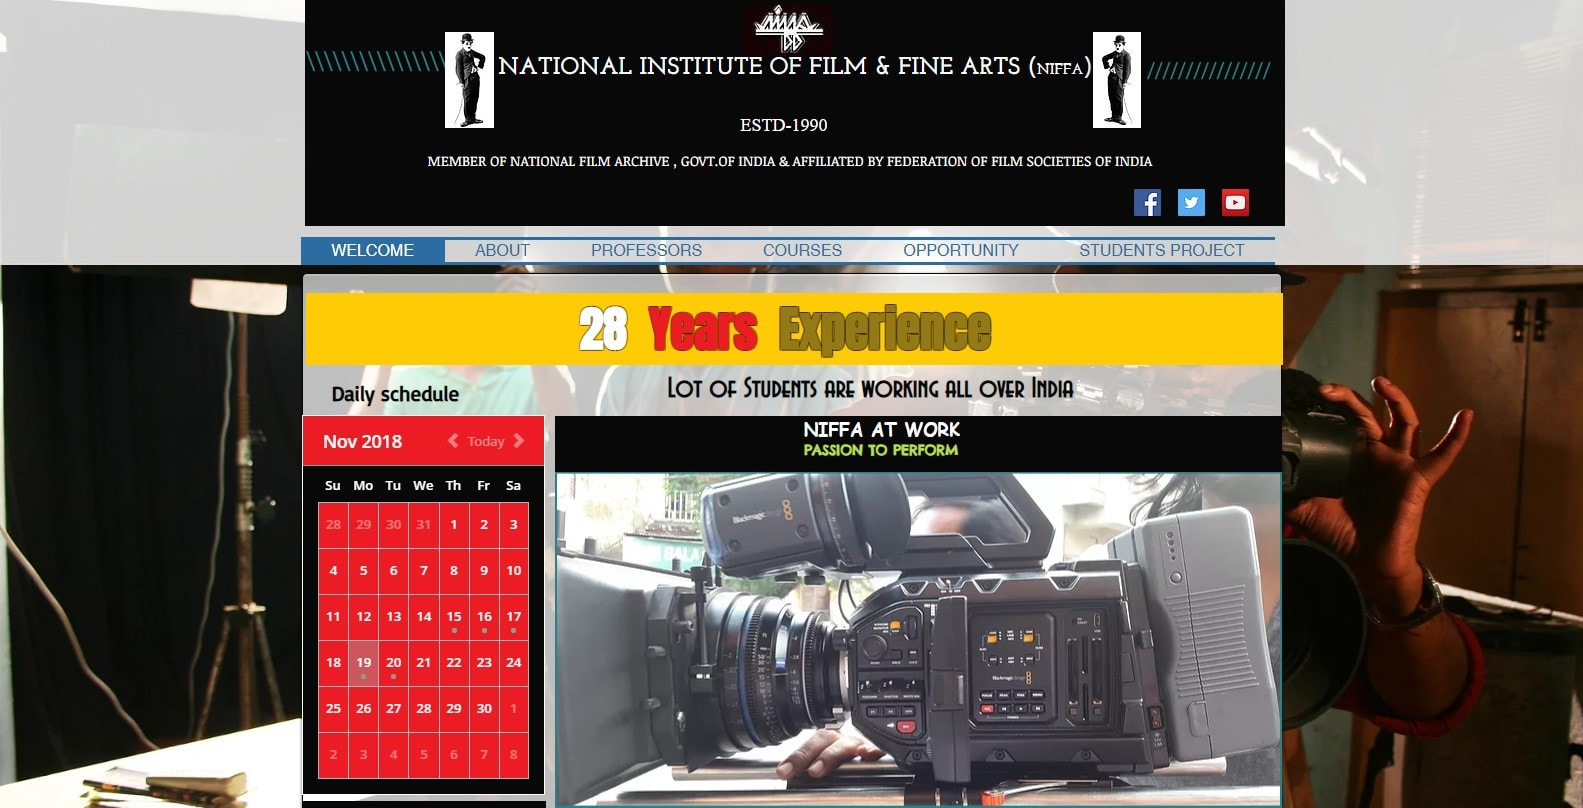 National Institute of Film and Fine Arts